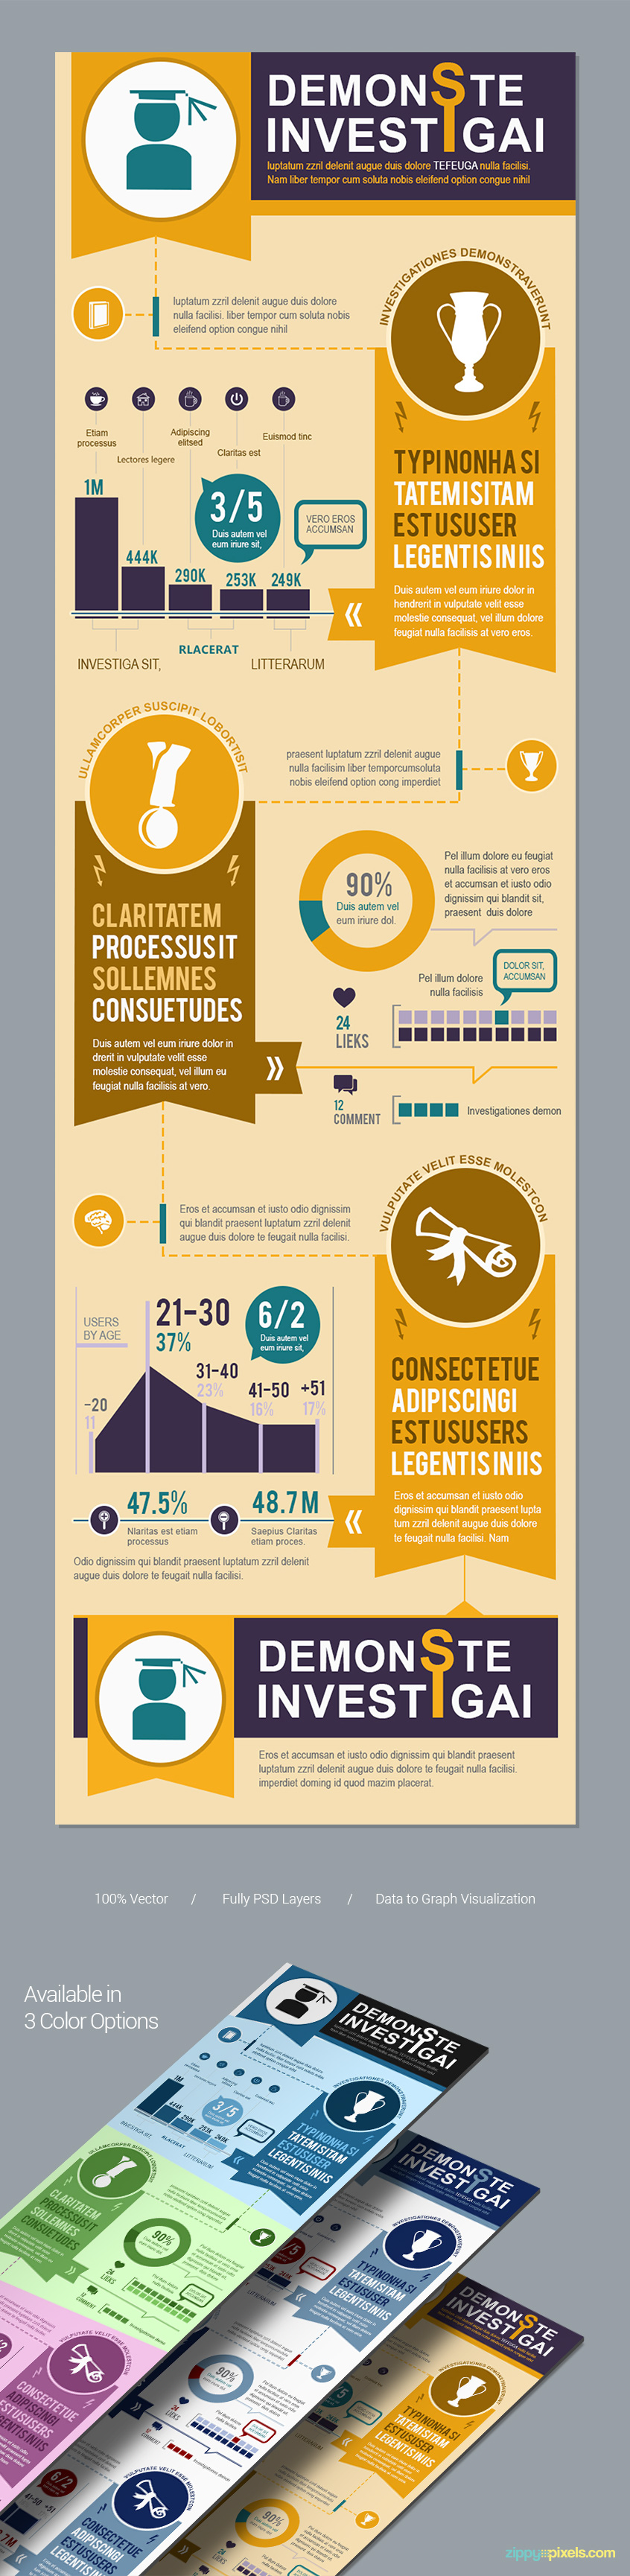 Education-infographics-template-psd-presentation